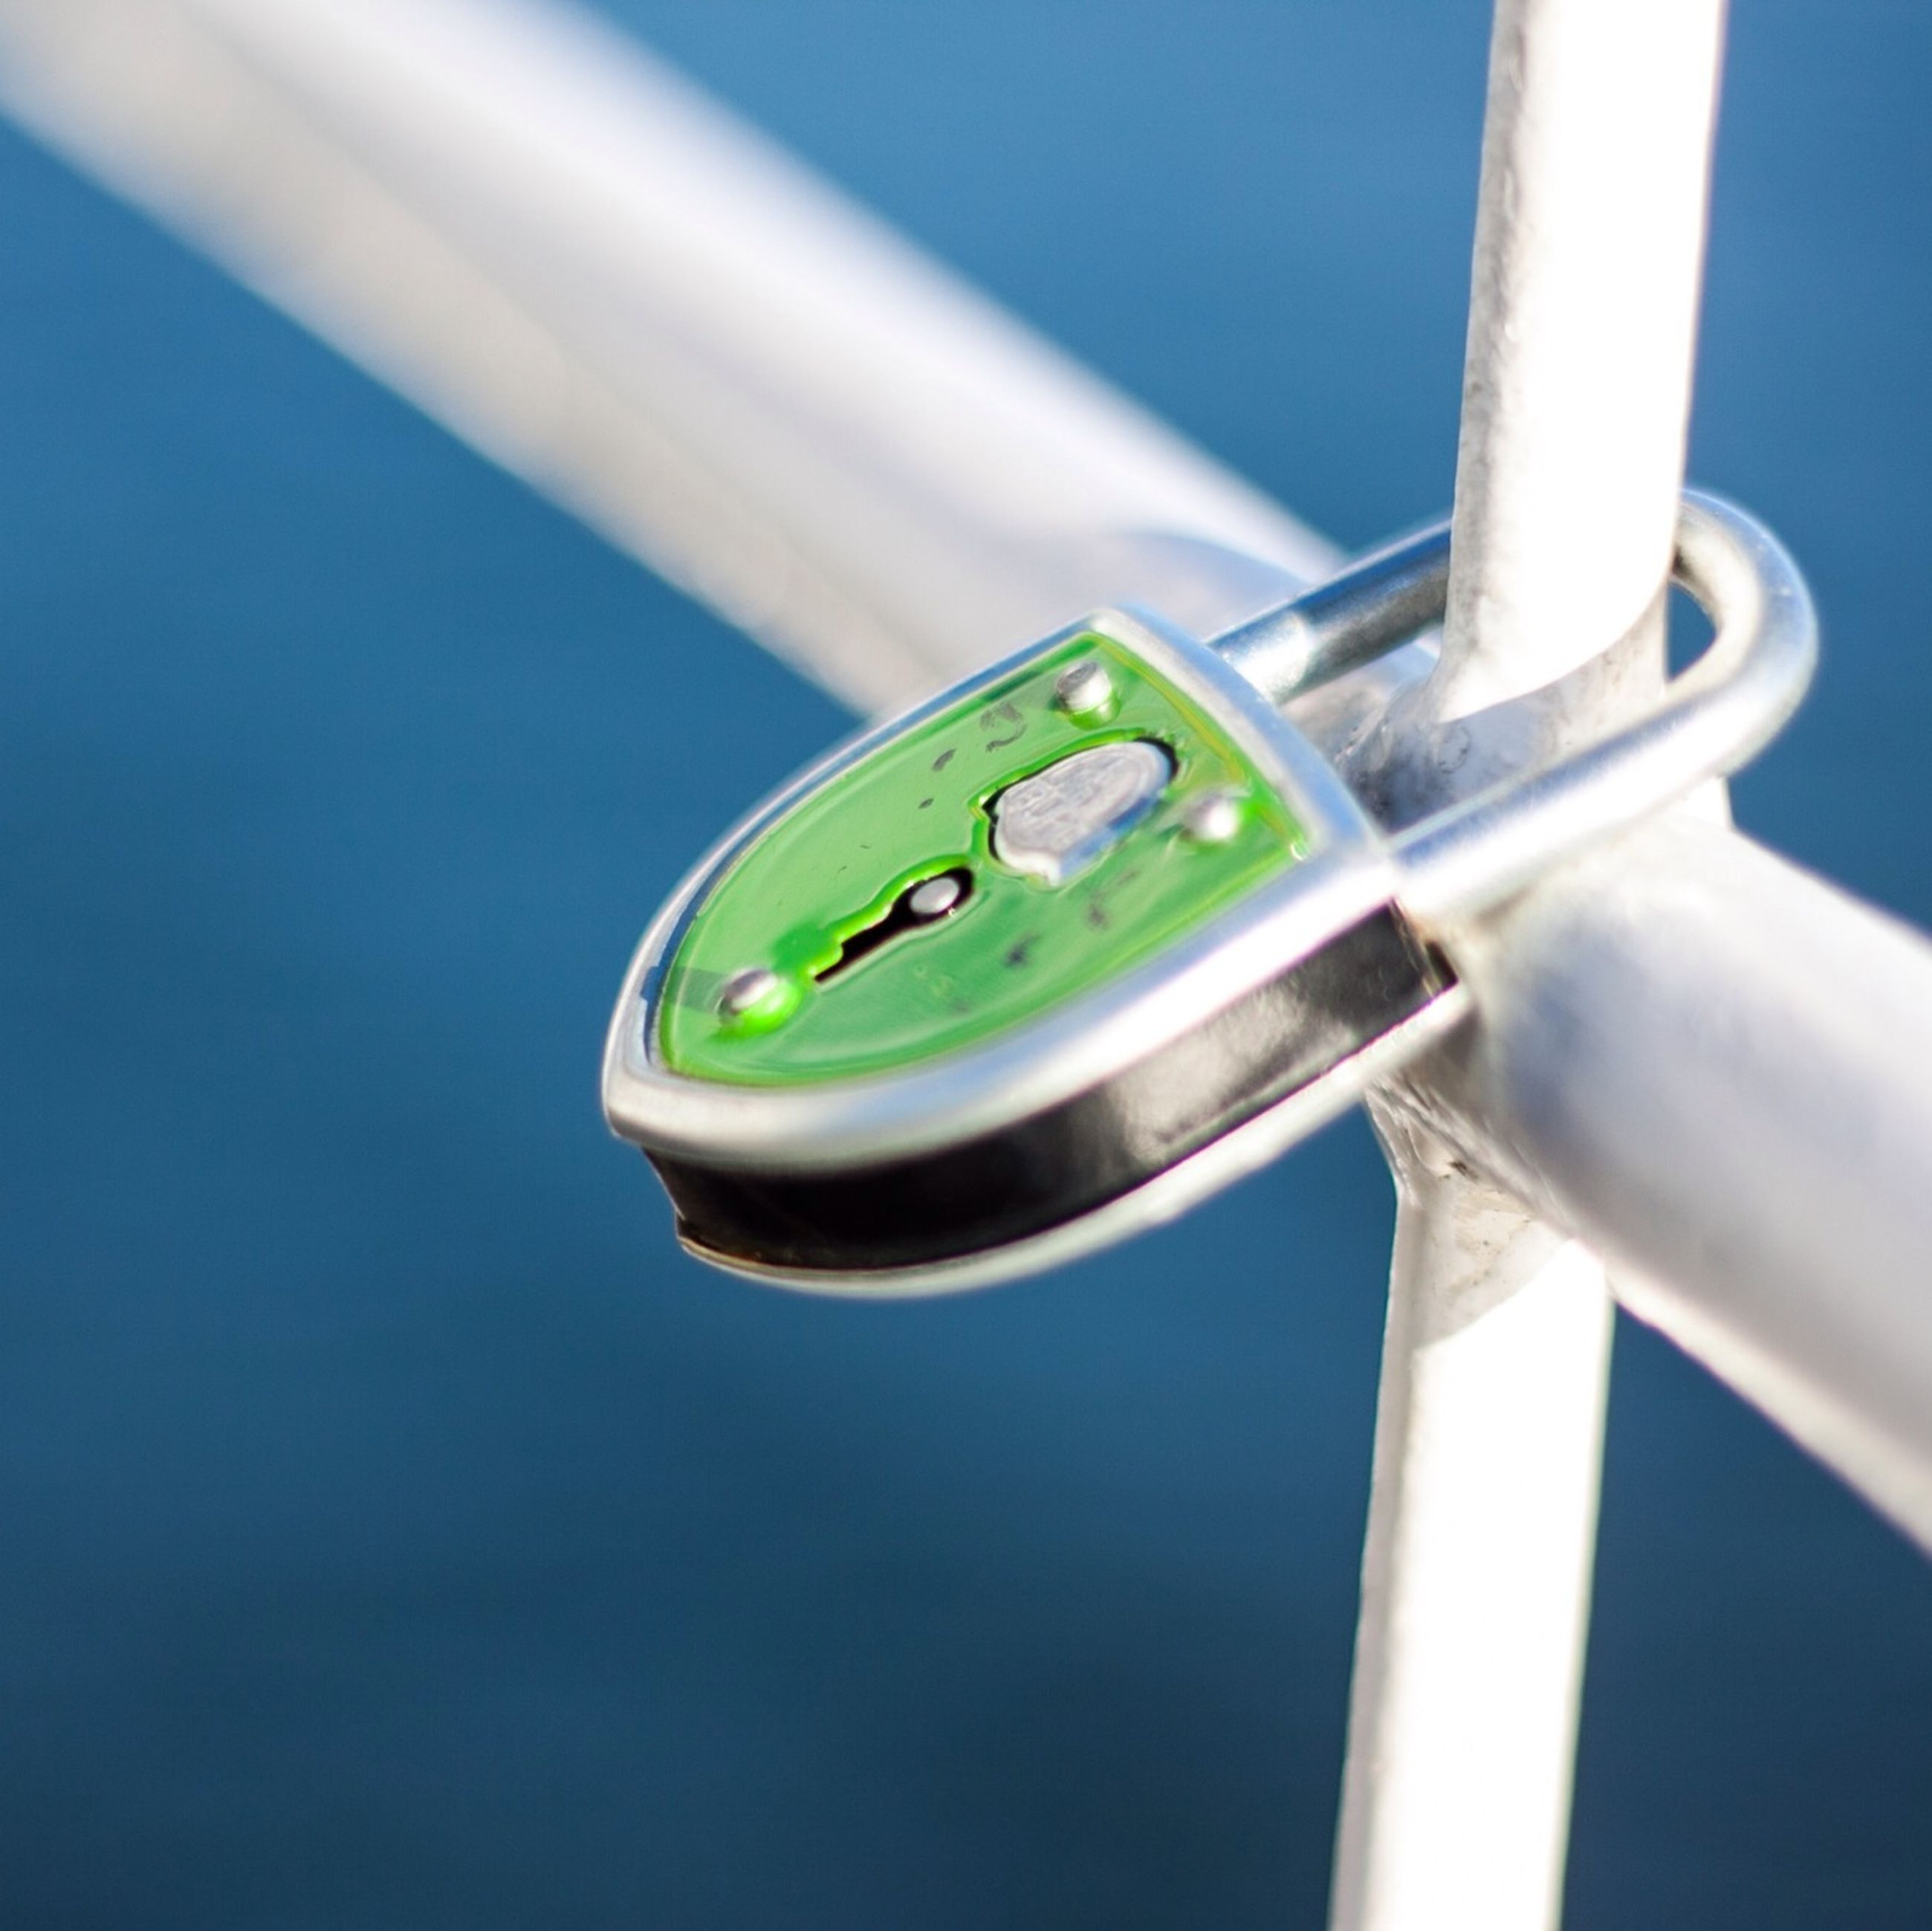 blue, low angle view, clear sky, metal, close-up, green color, day, no people, sunlight, part of, outdoors, transportation, metallic, copy space, sky, pole, built structure, nature, reflection, water